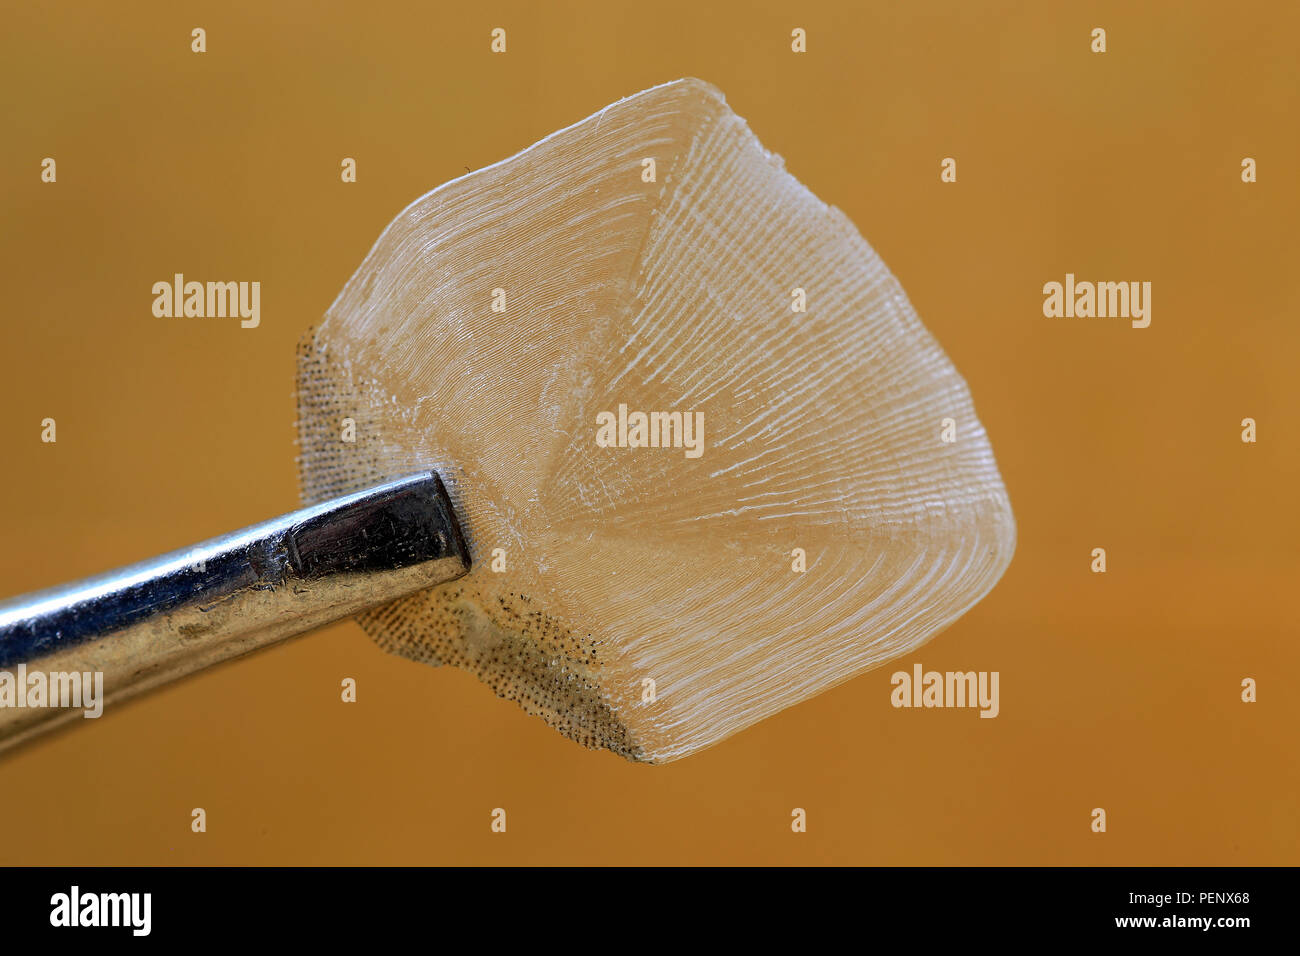 A fish scale used to determine the fish's age by reading the growth rings - Stock Image